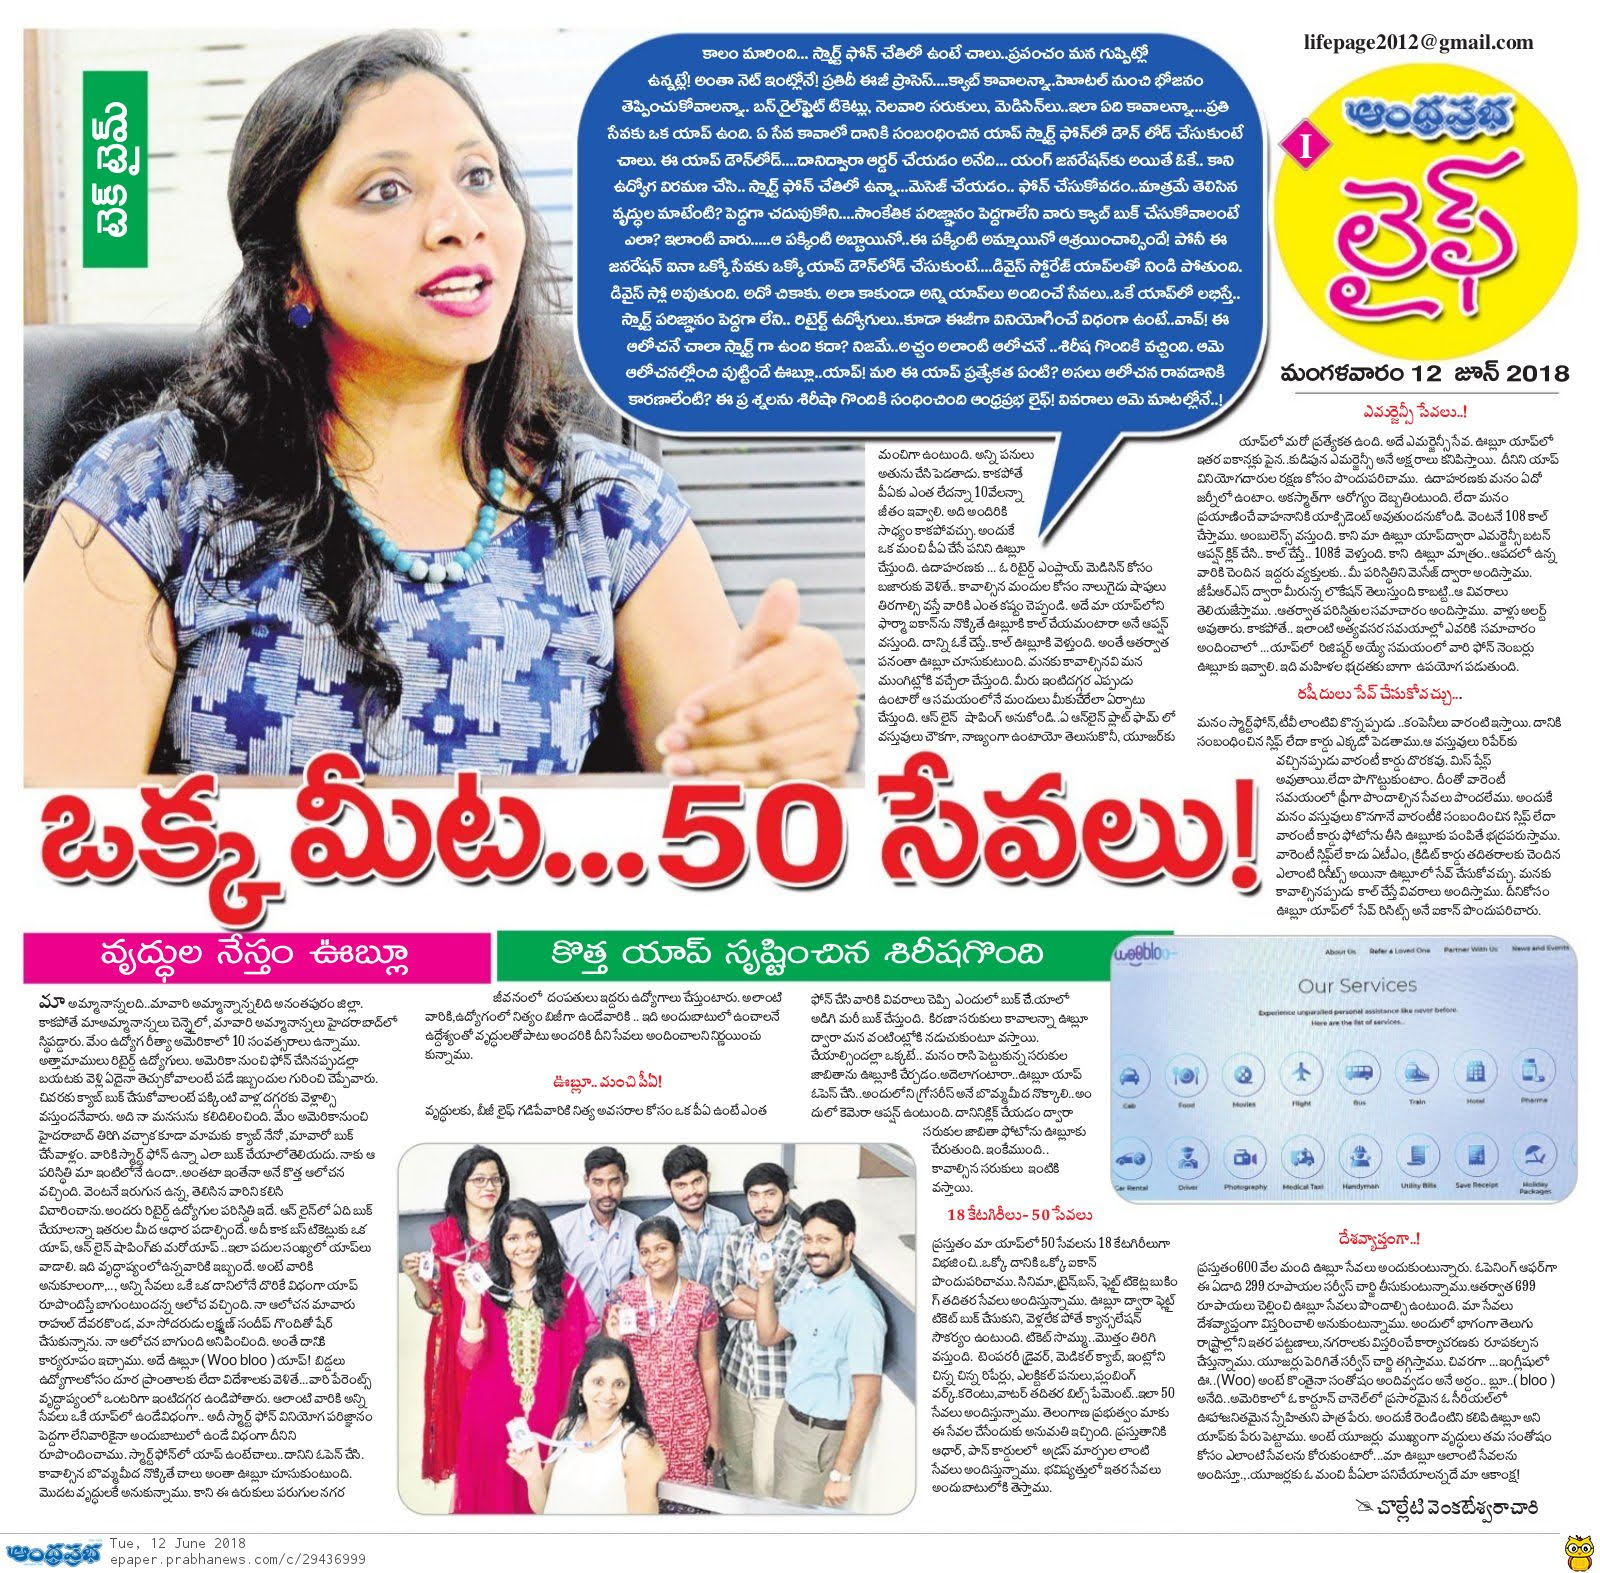 woobloo-in-Andhra-Prabha-Newspaper